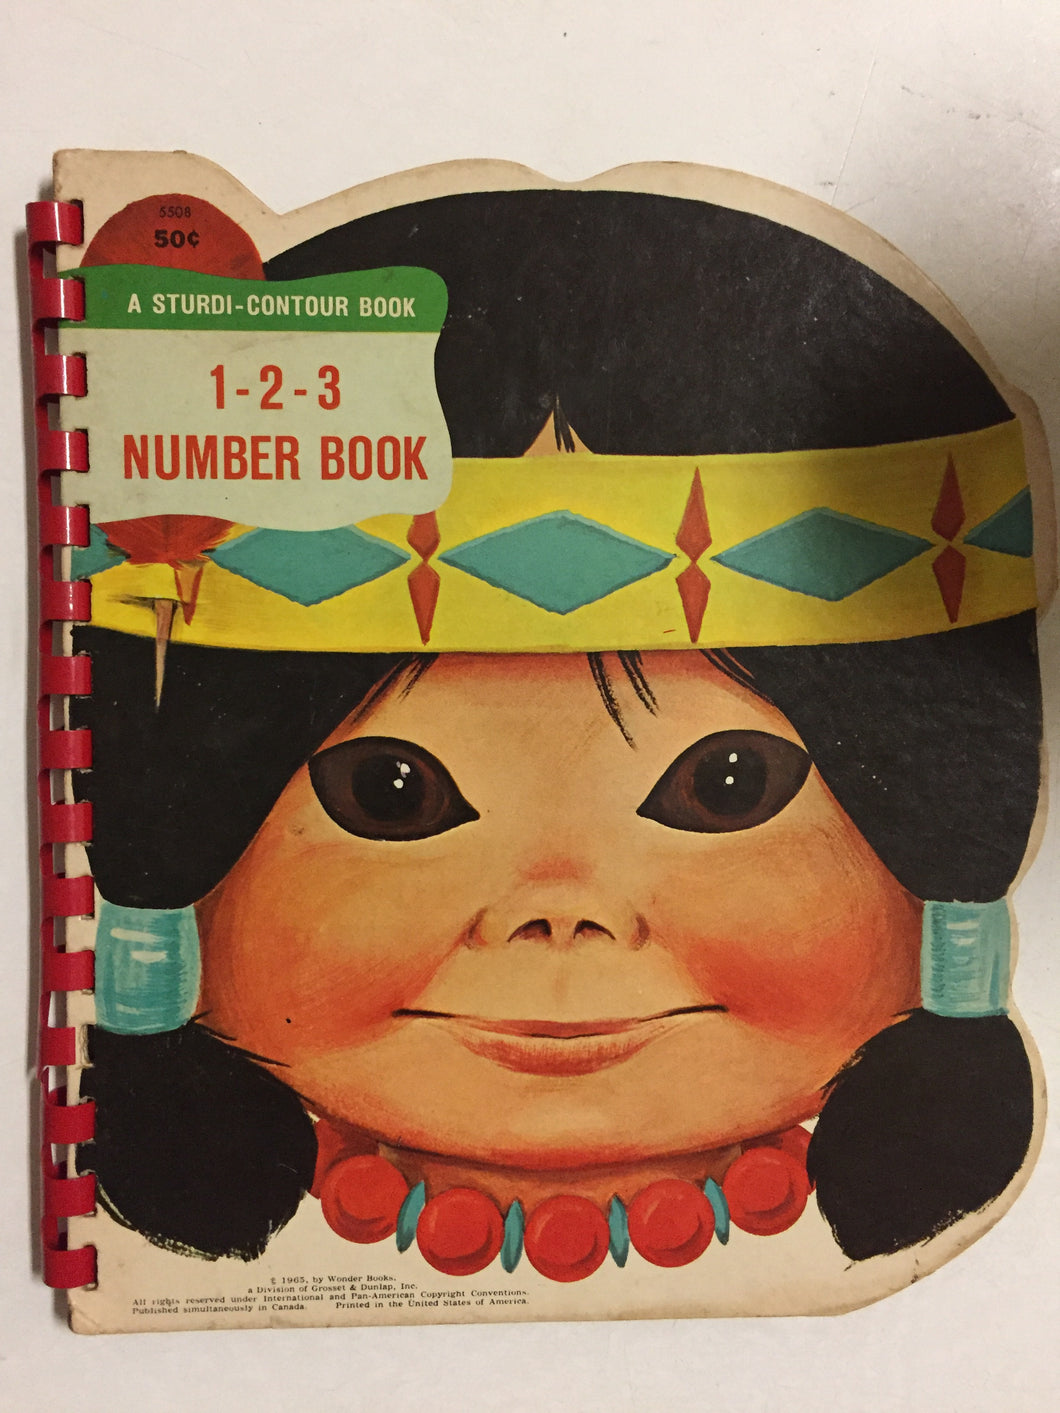 1-2-3 Number Book - Slick Cat Books